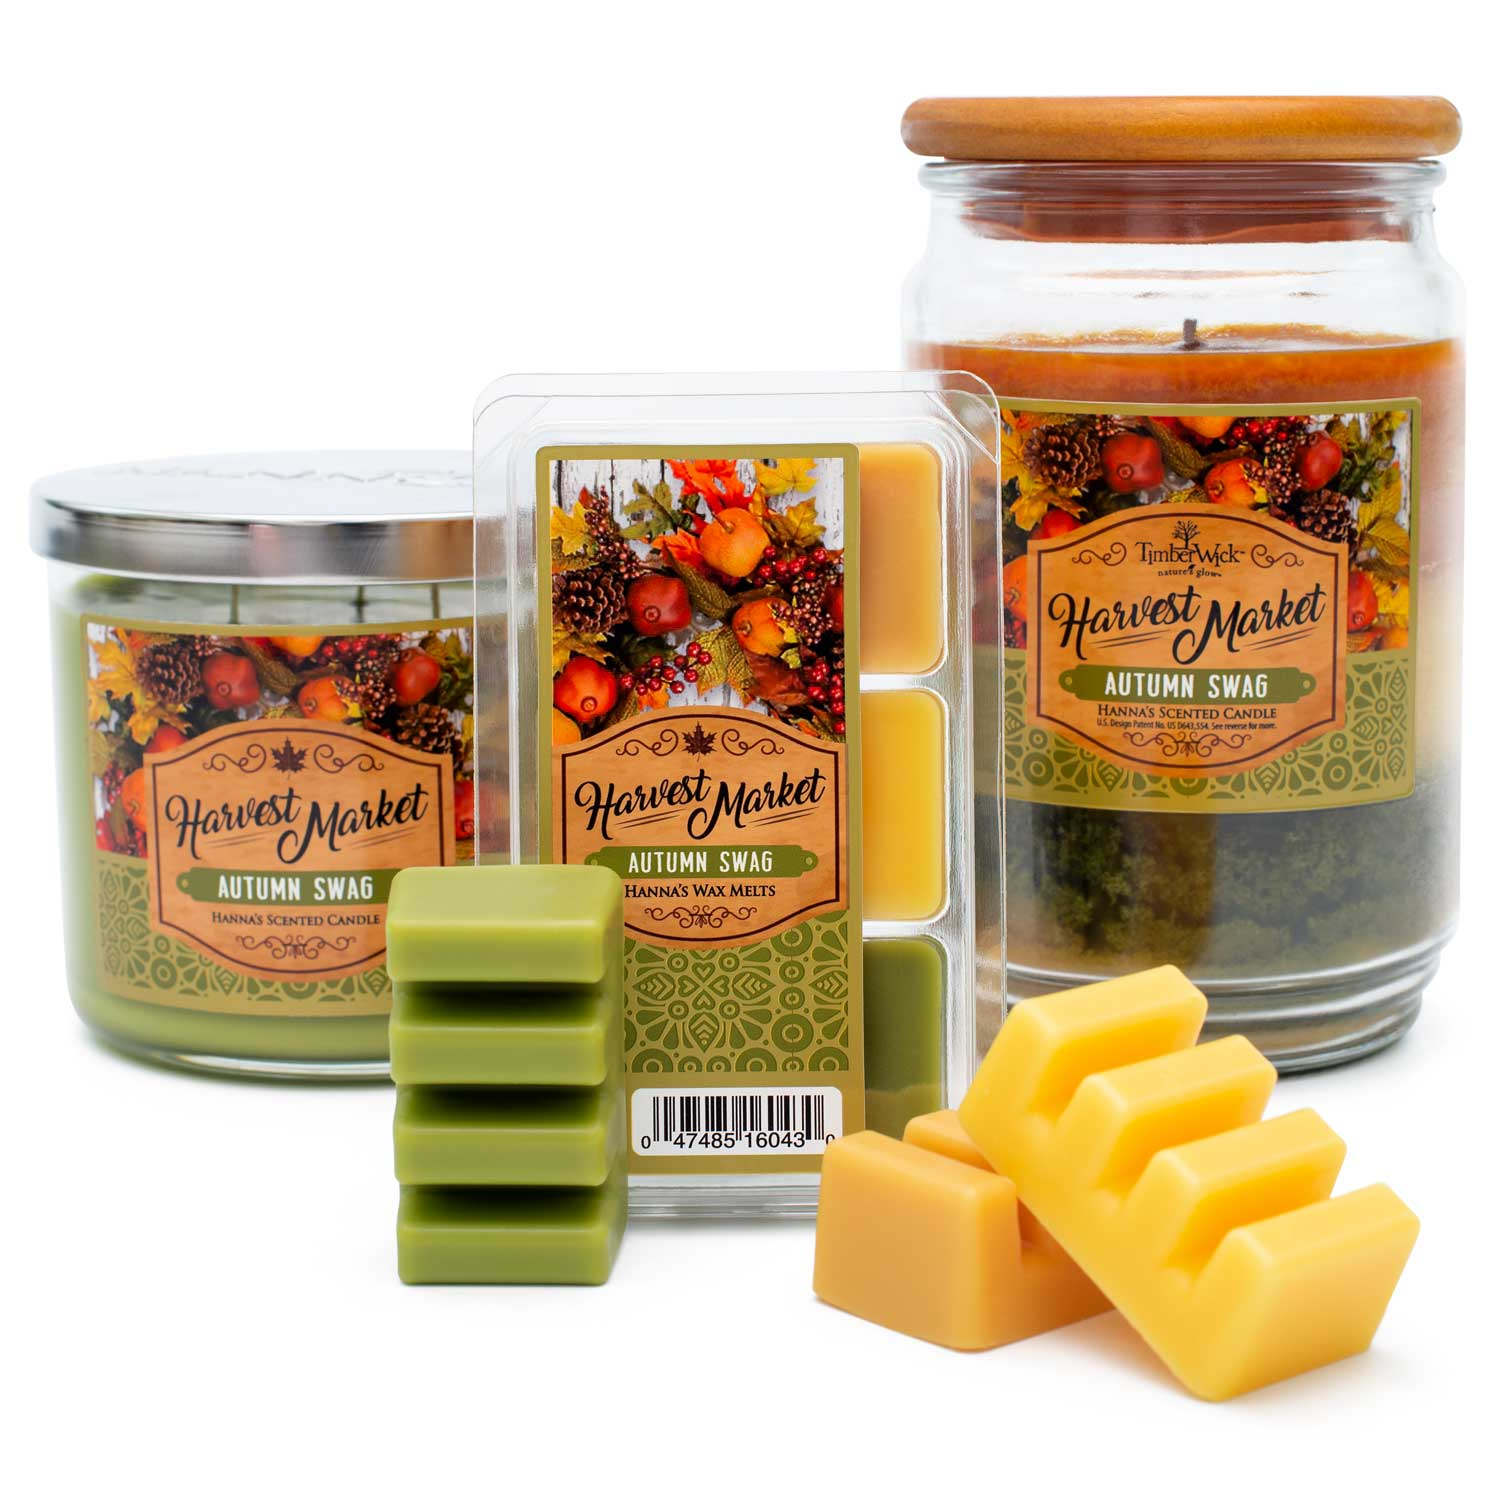 Autumn Swag Scented Wax Melts Melts Candlemart.com $ 2.49